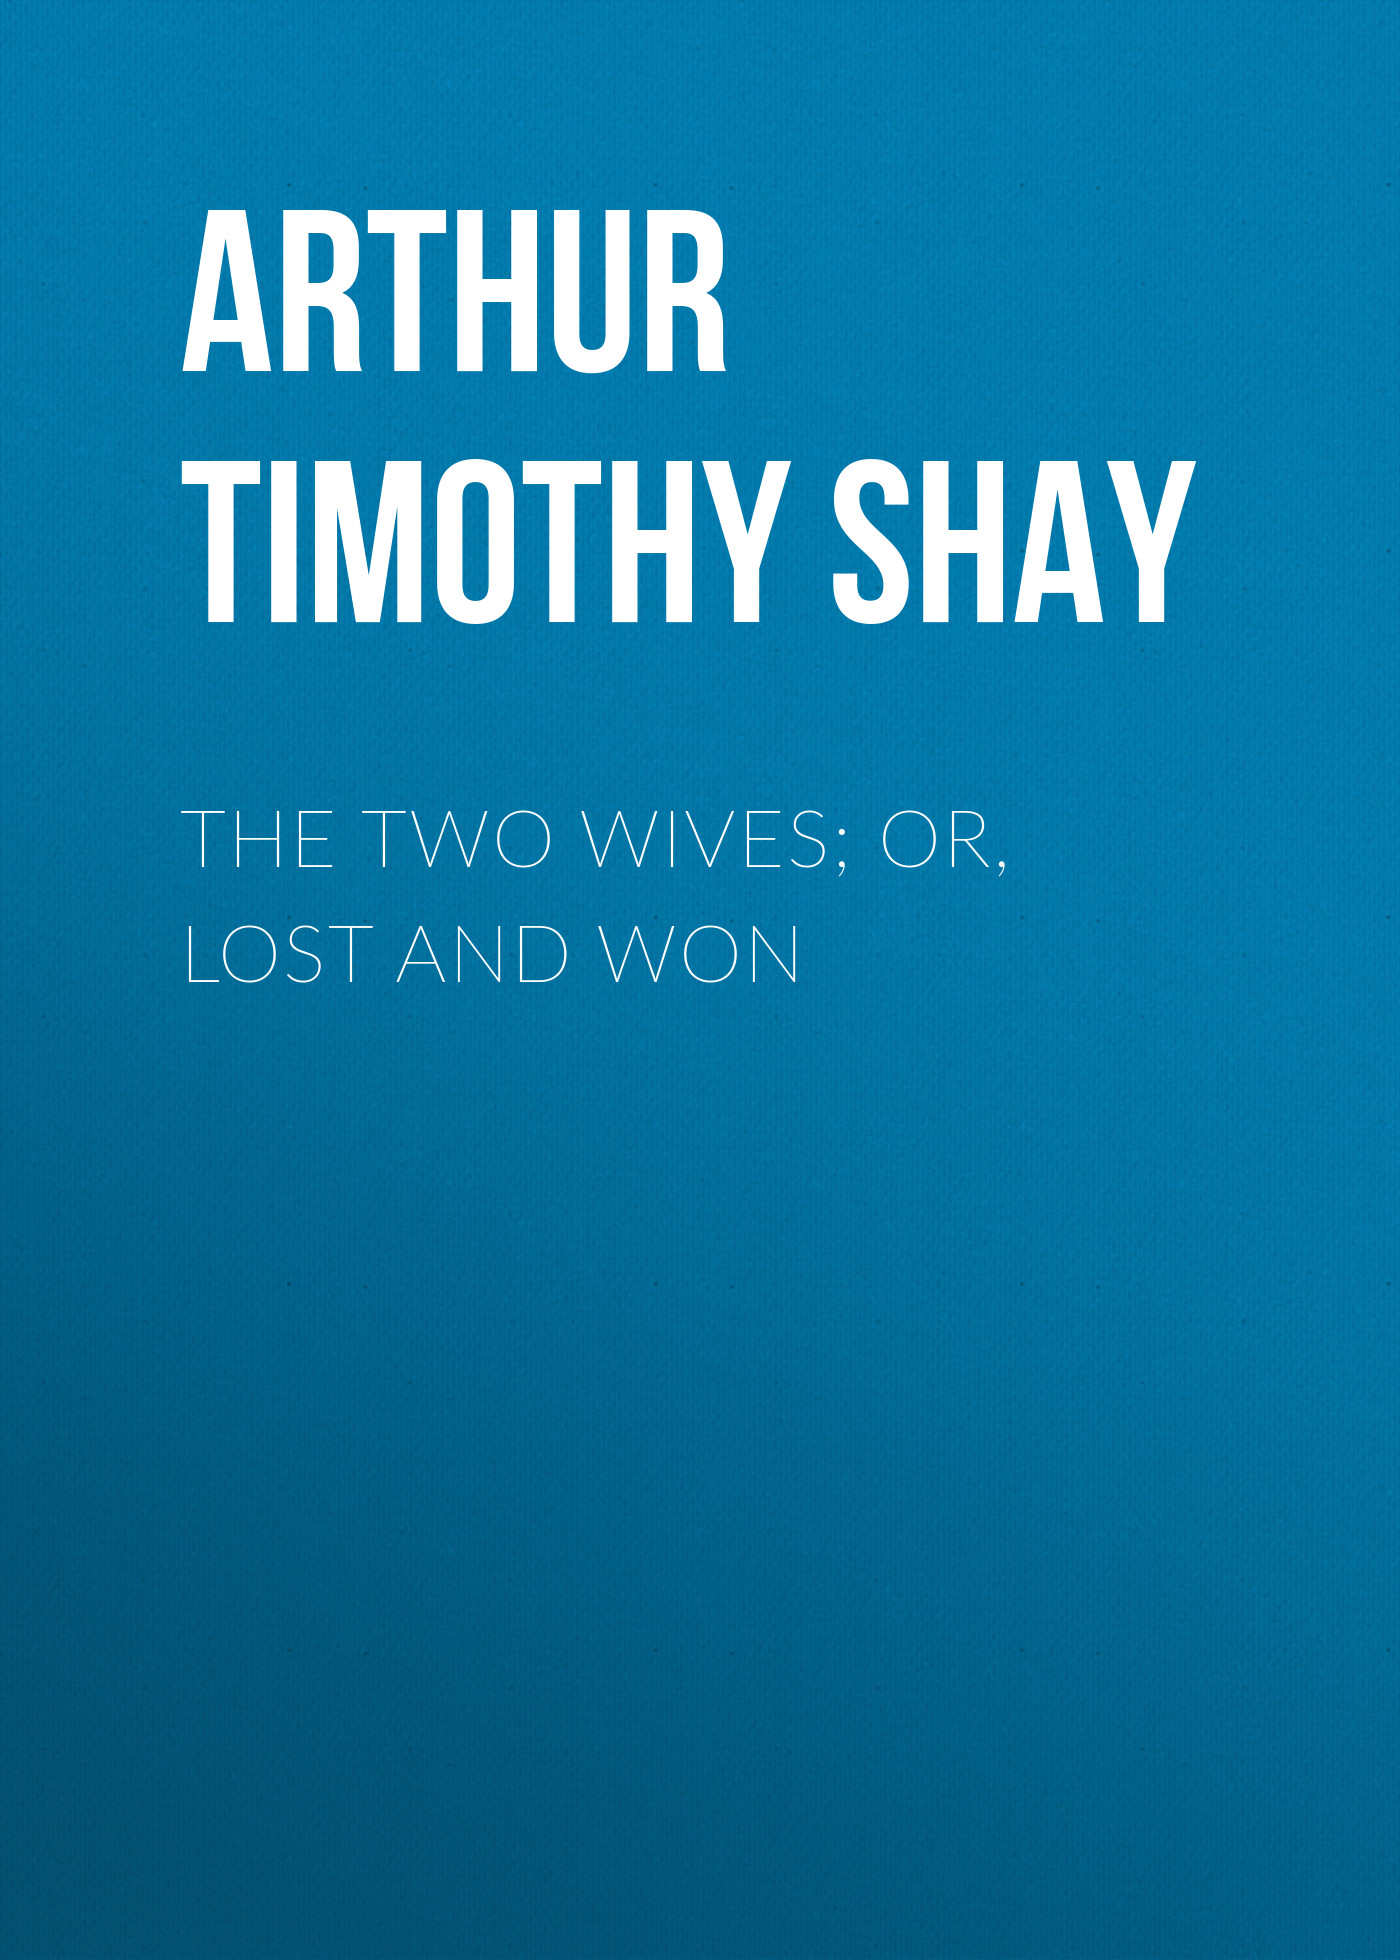 Arthur Timothy Shay The Two Wives; Or, Lost and Won arthur and the lost diary